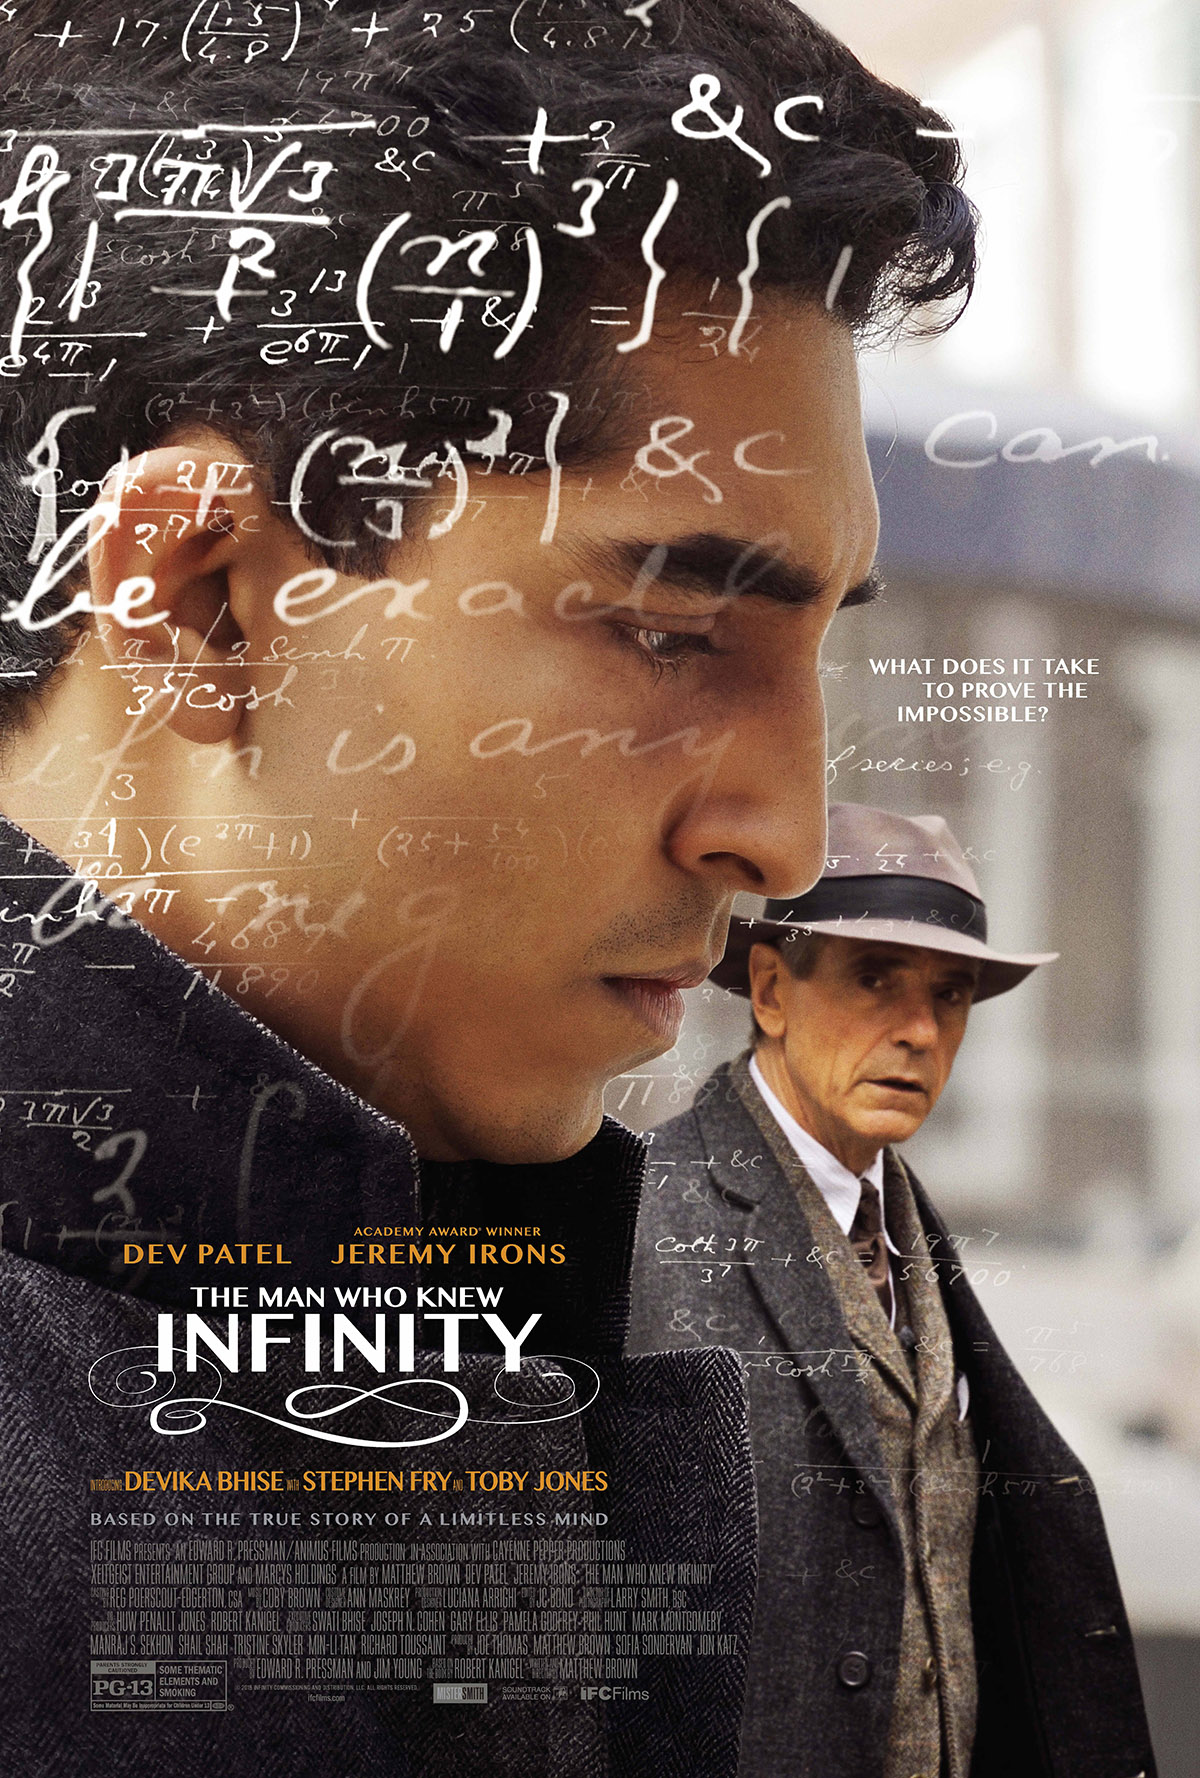 The Man Who Knew Infinity (2015) Hindi Dubbed 720p BluRay 1GB Download